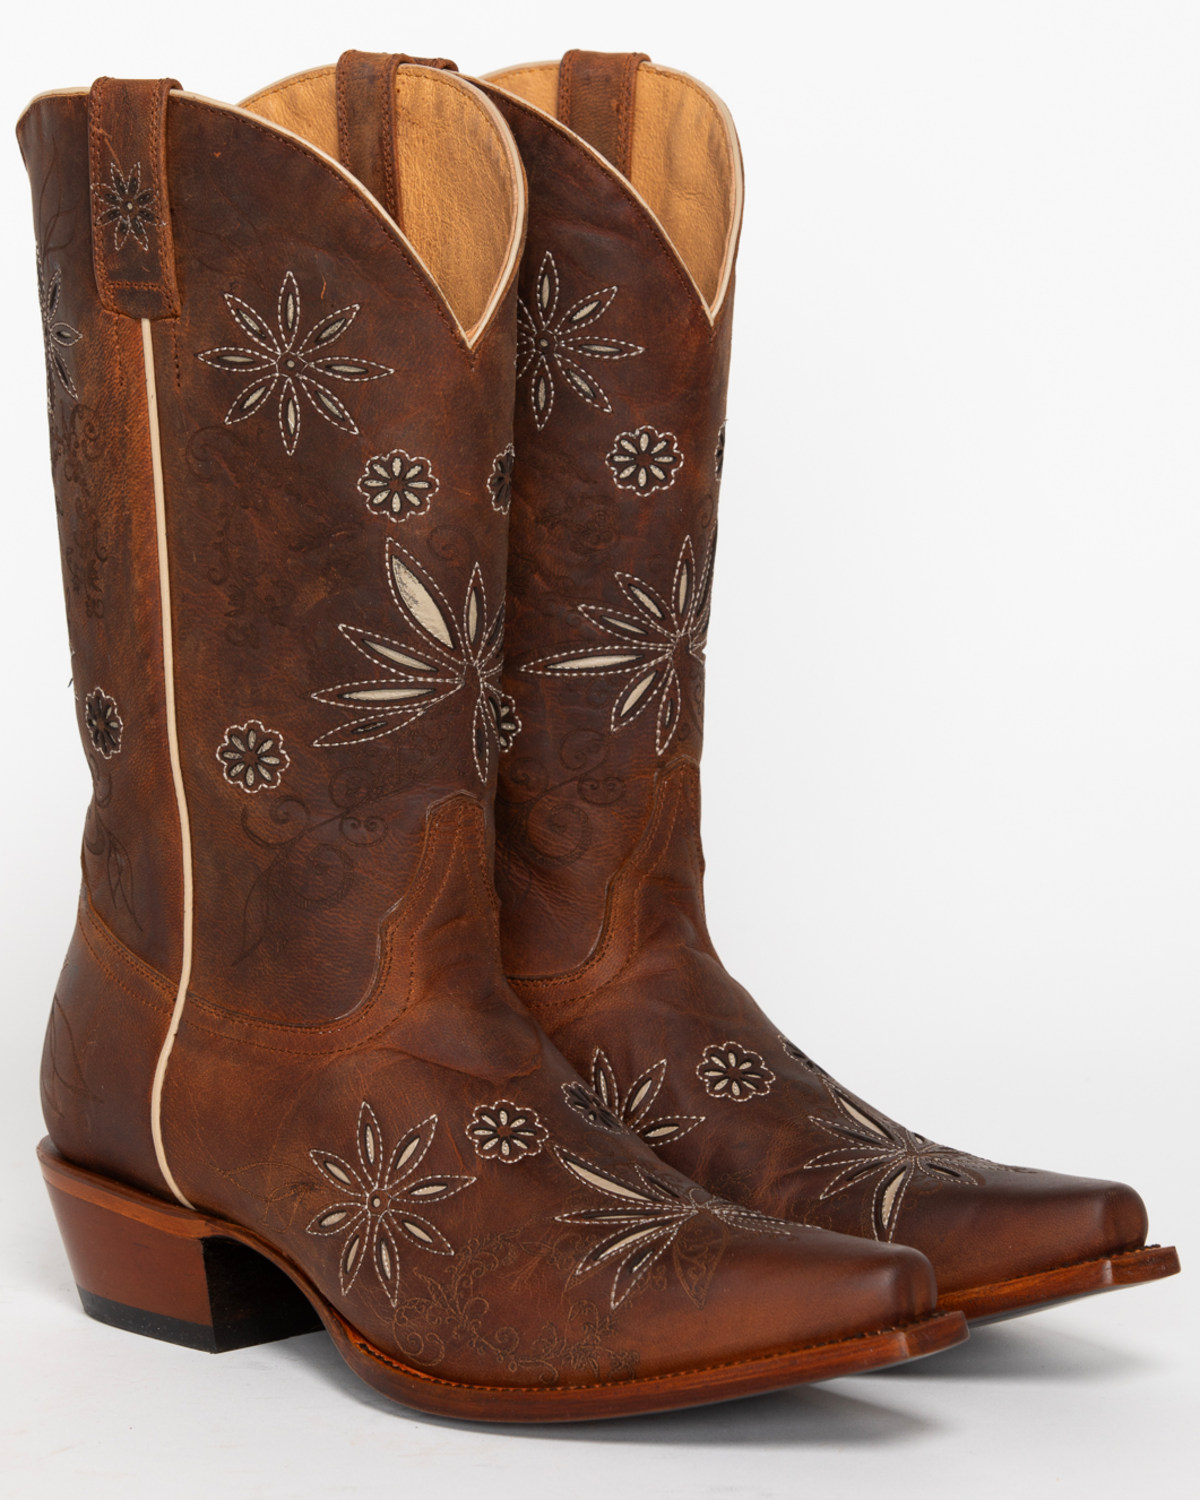 8d3b0de04 Zoomed Image Shyanne® Women's Daisy Mae Western Boots, Distressed Brown, ...